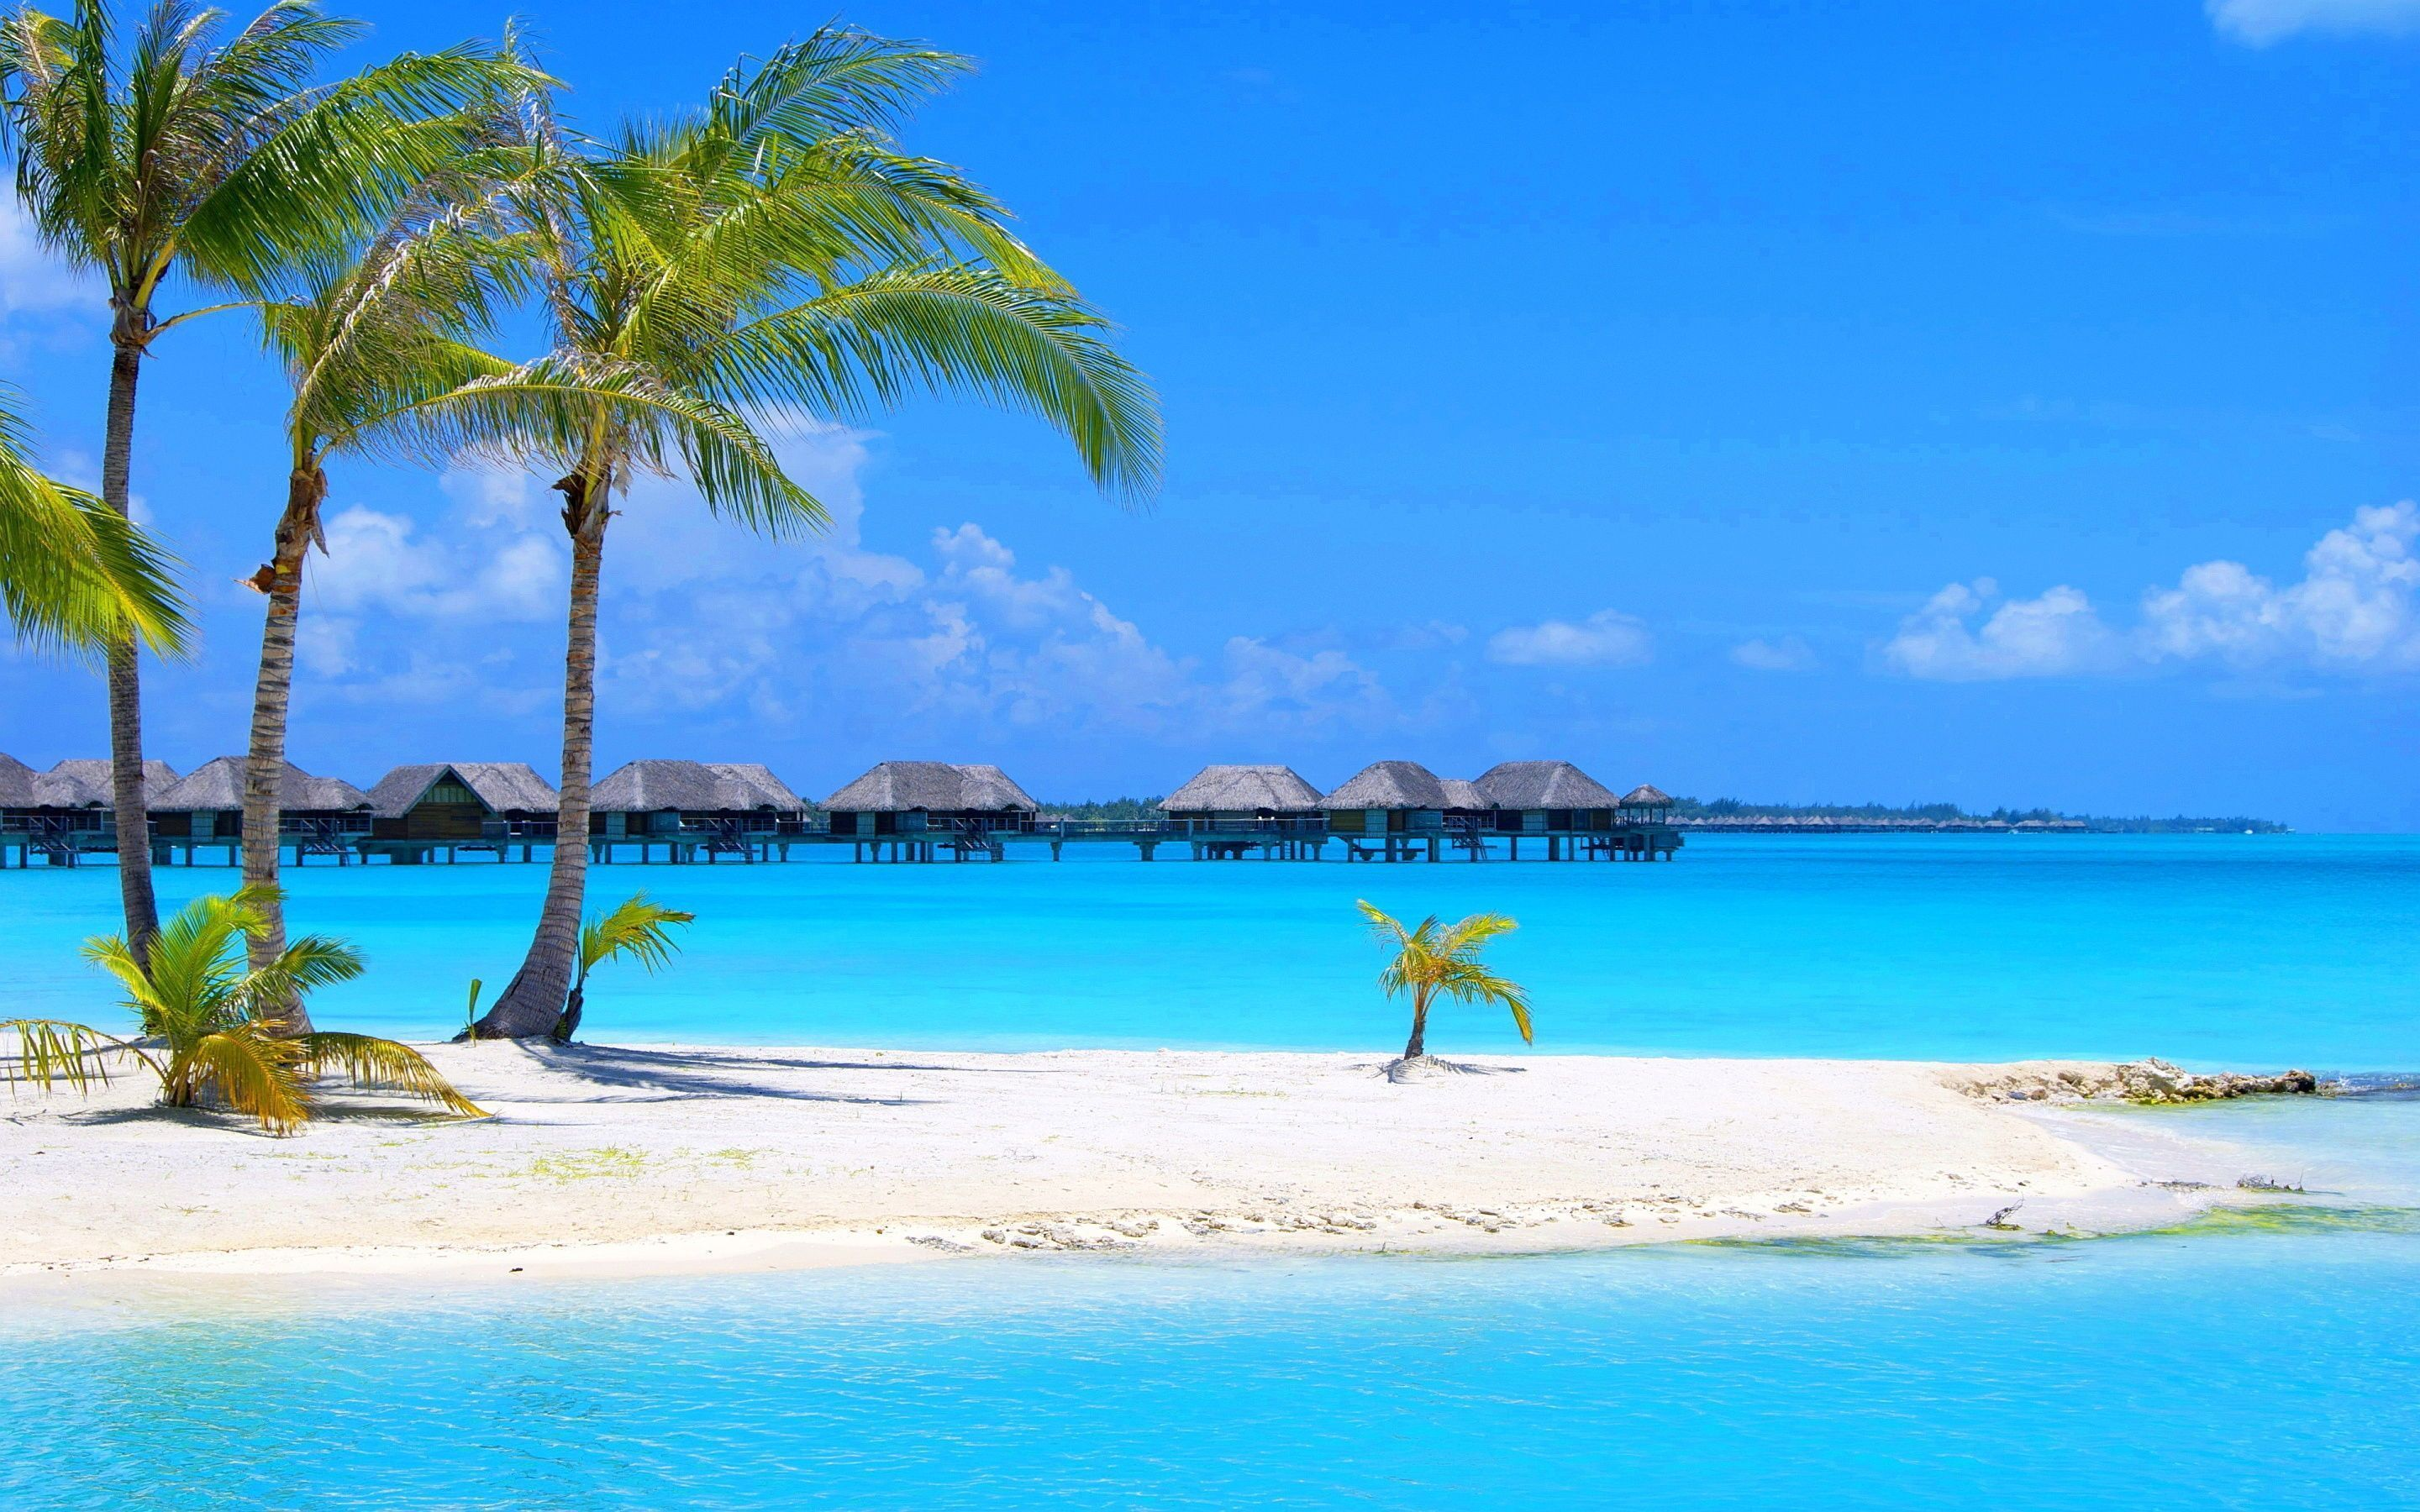 Most Beautiful Beach Hd Wallpaper Download Beach Images Free Pc Beach Wallpaper Beautiful Beaches Beautiful Beach Pictures